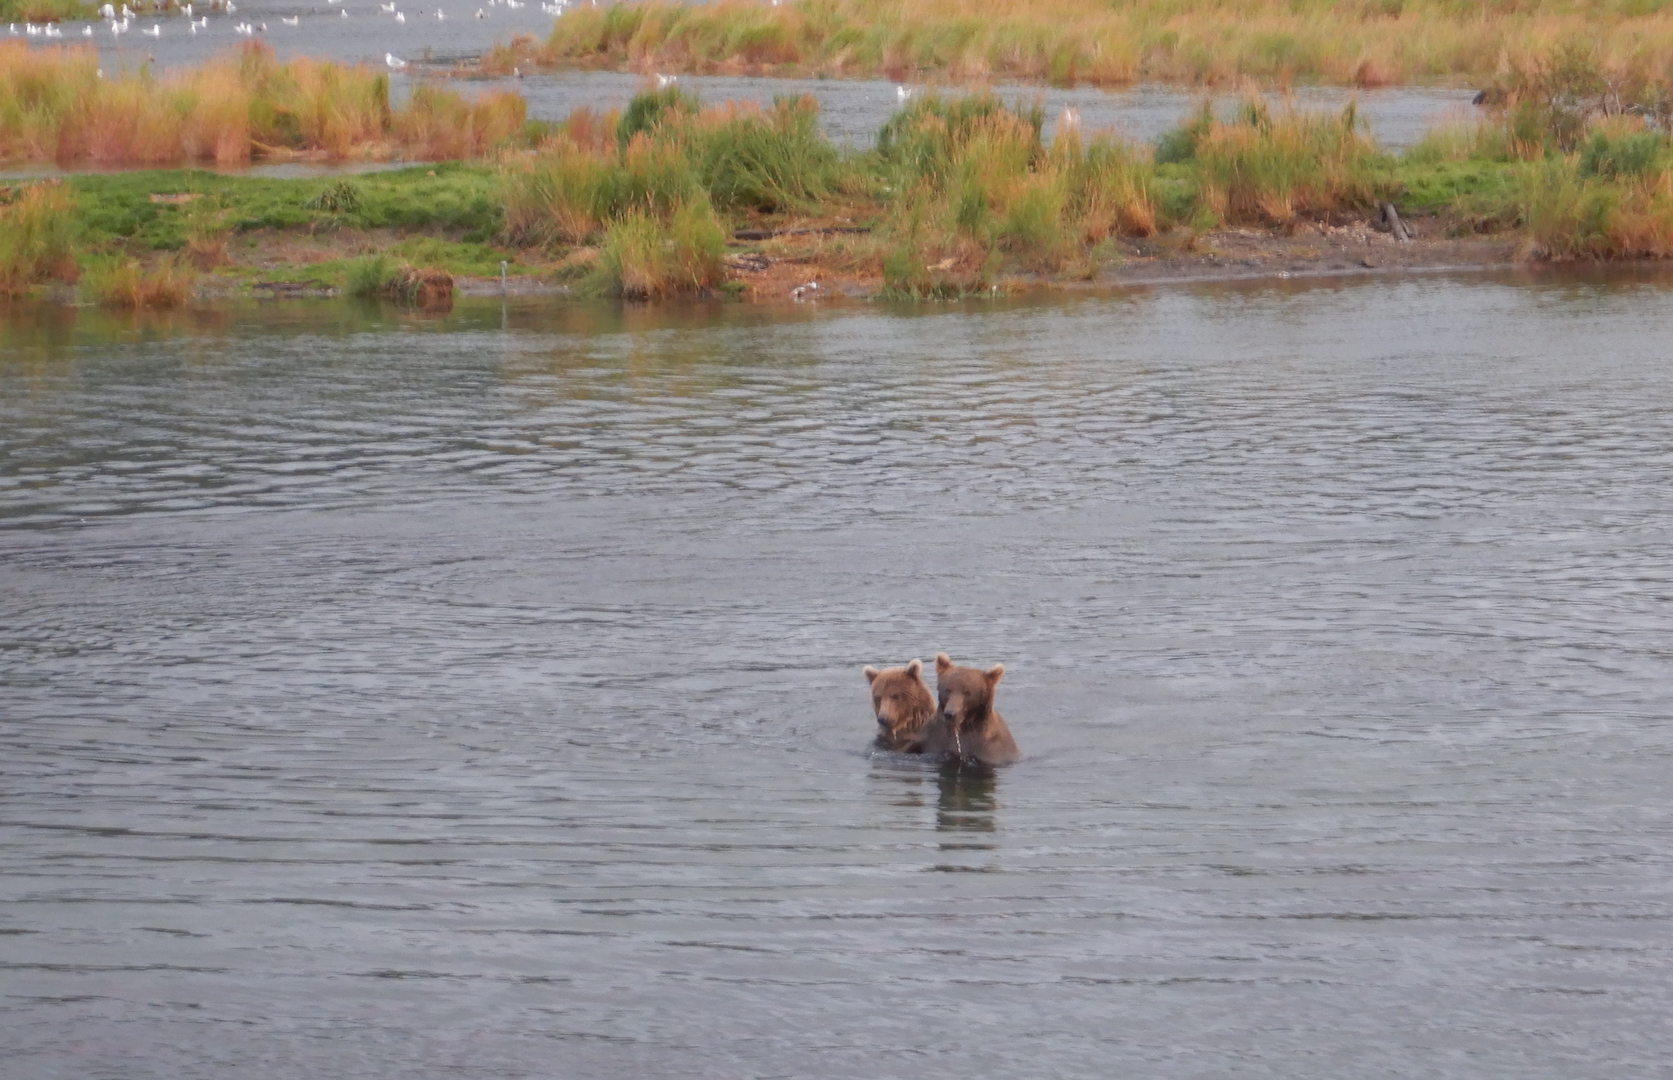 two bears in water